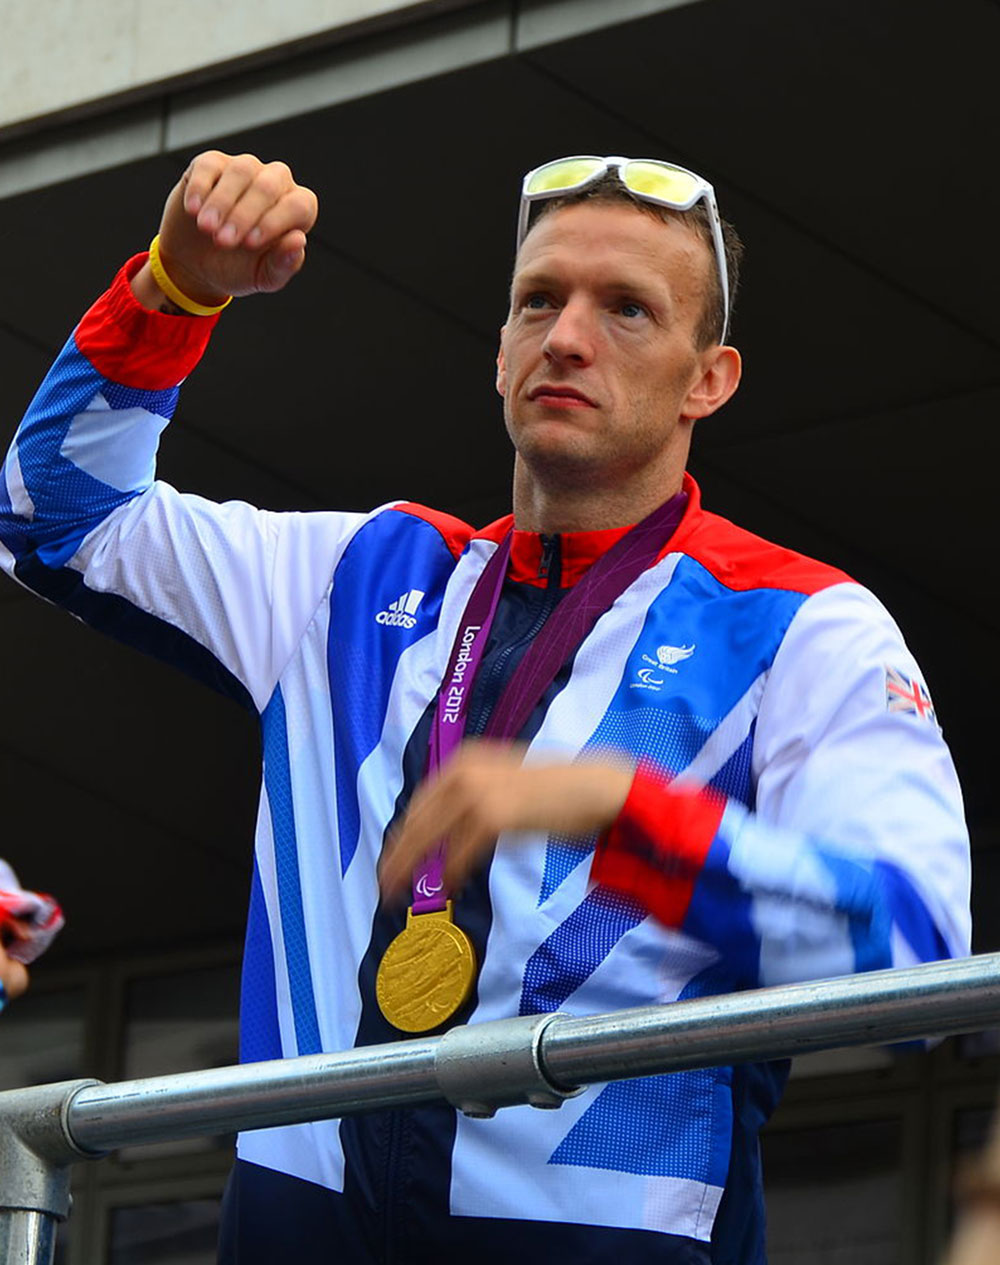 Richard Whitehead - Paralympic athlete and marathon world record holder | ran 40 marathons in 40 days